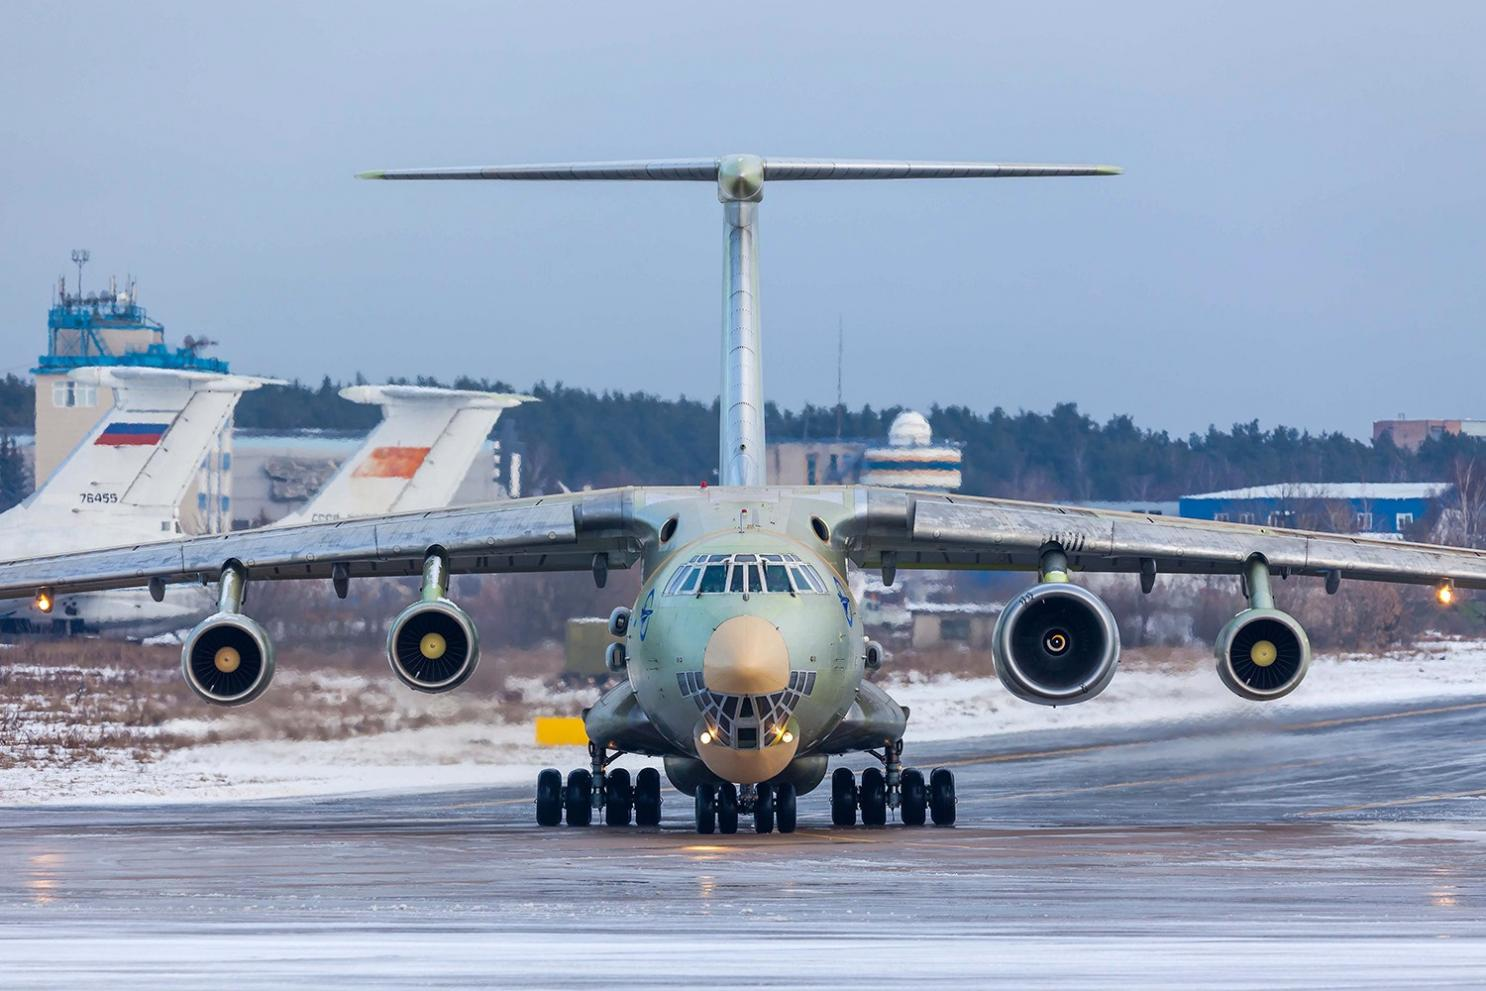 Russian MoD plans To Buy Over 100 Ilyushin Il-76 strategic airlifter  Military Aircraft In 10 Years